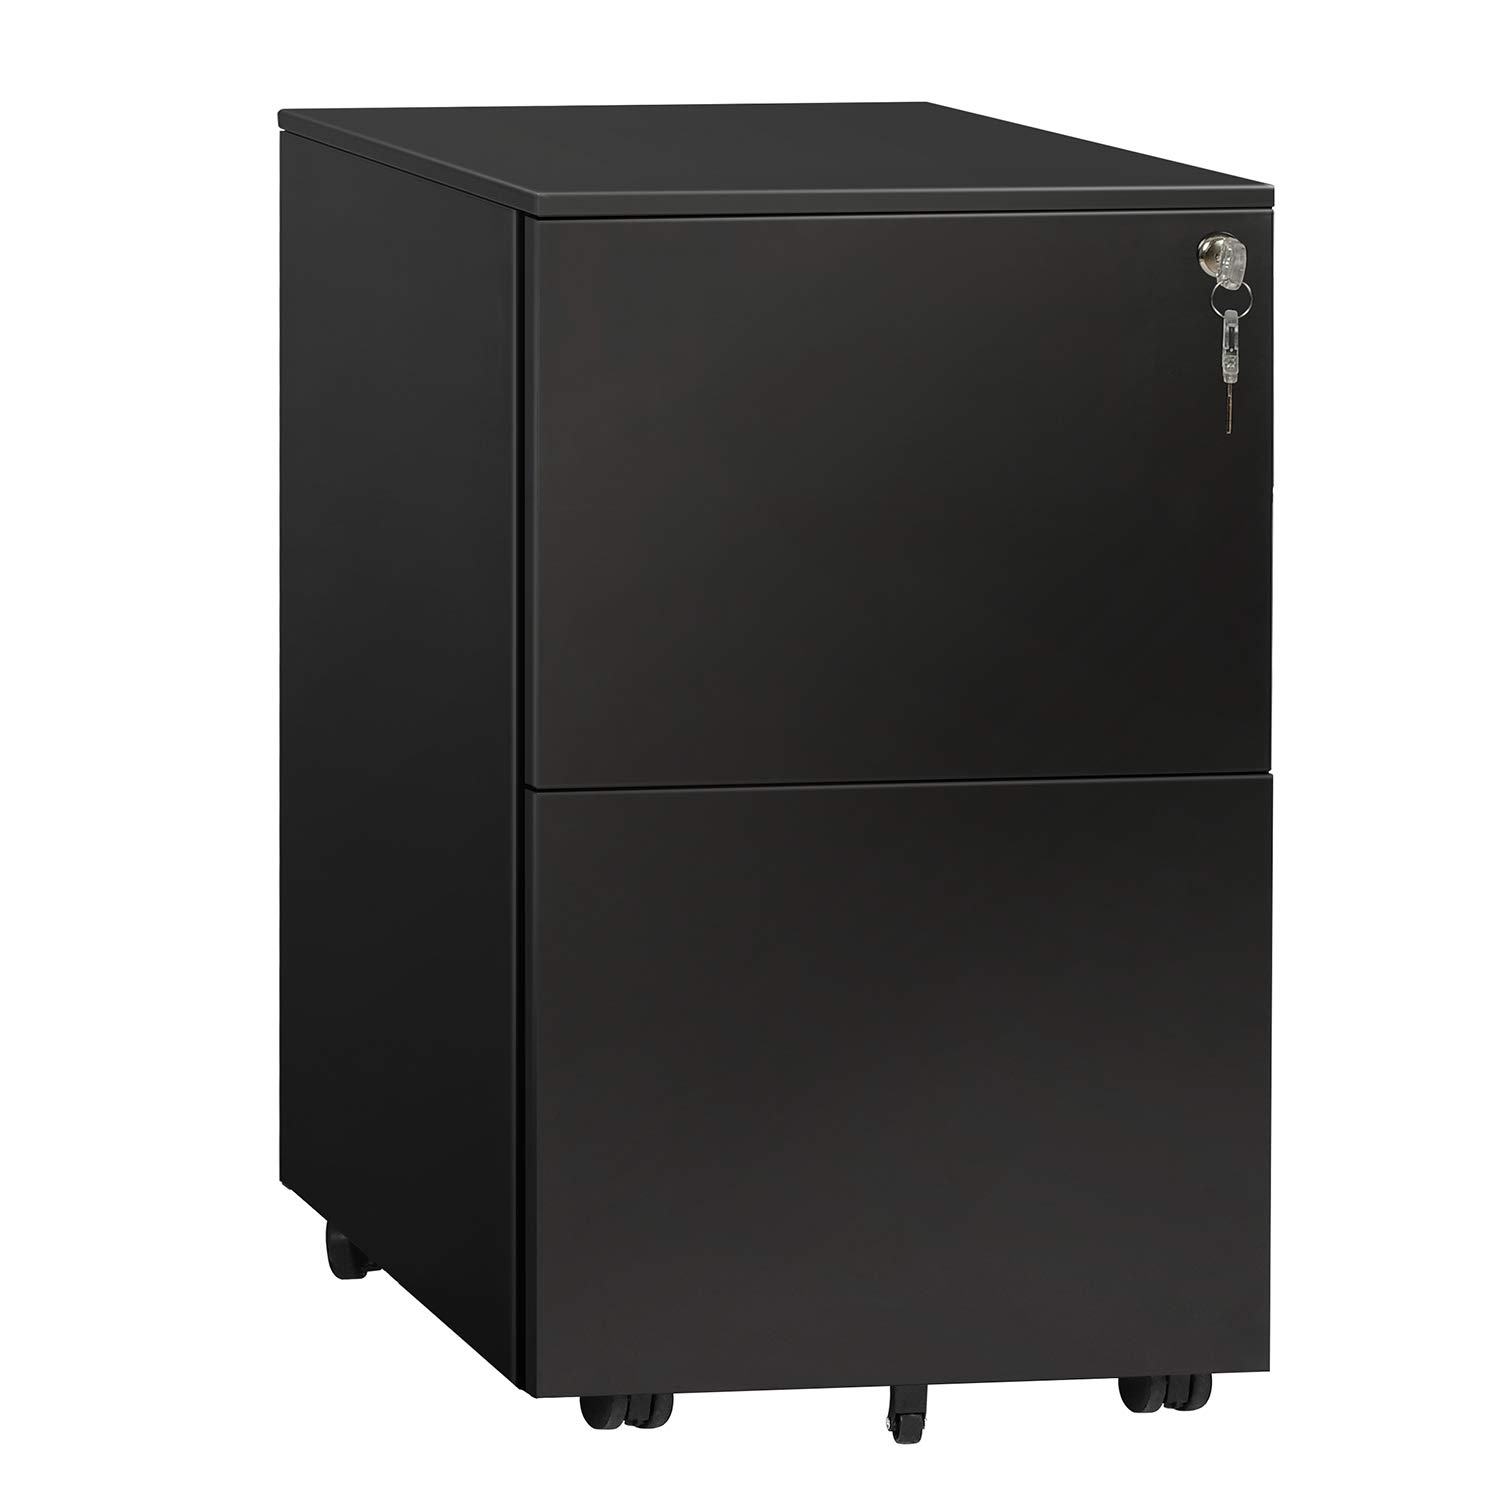 DEVAISE Locking File Cabinet, 2 Drawer Rolling Metal Filing Cabinet, Fully Assembled Except Wheels, Black by DEVAISE